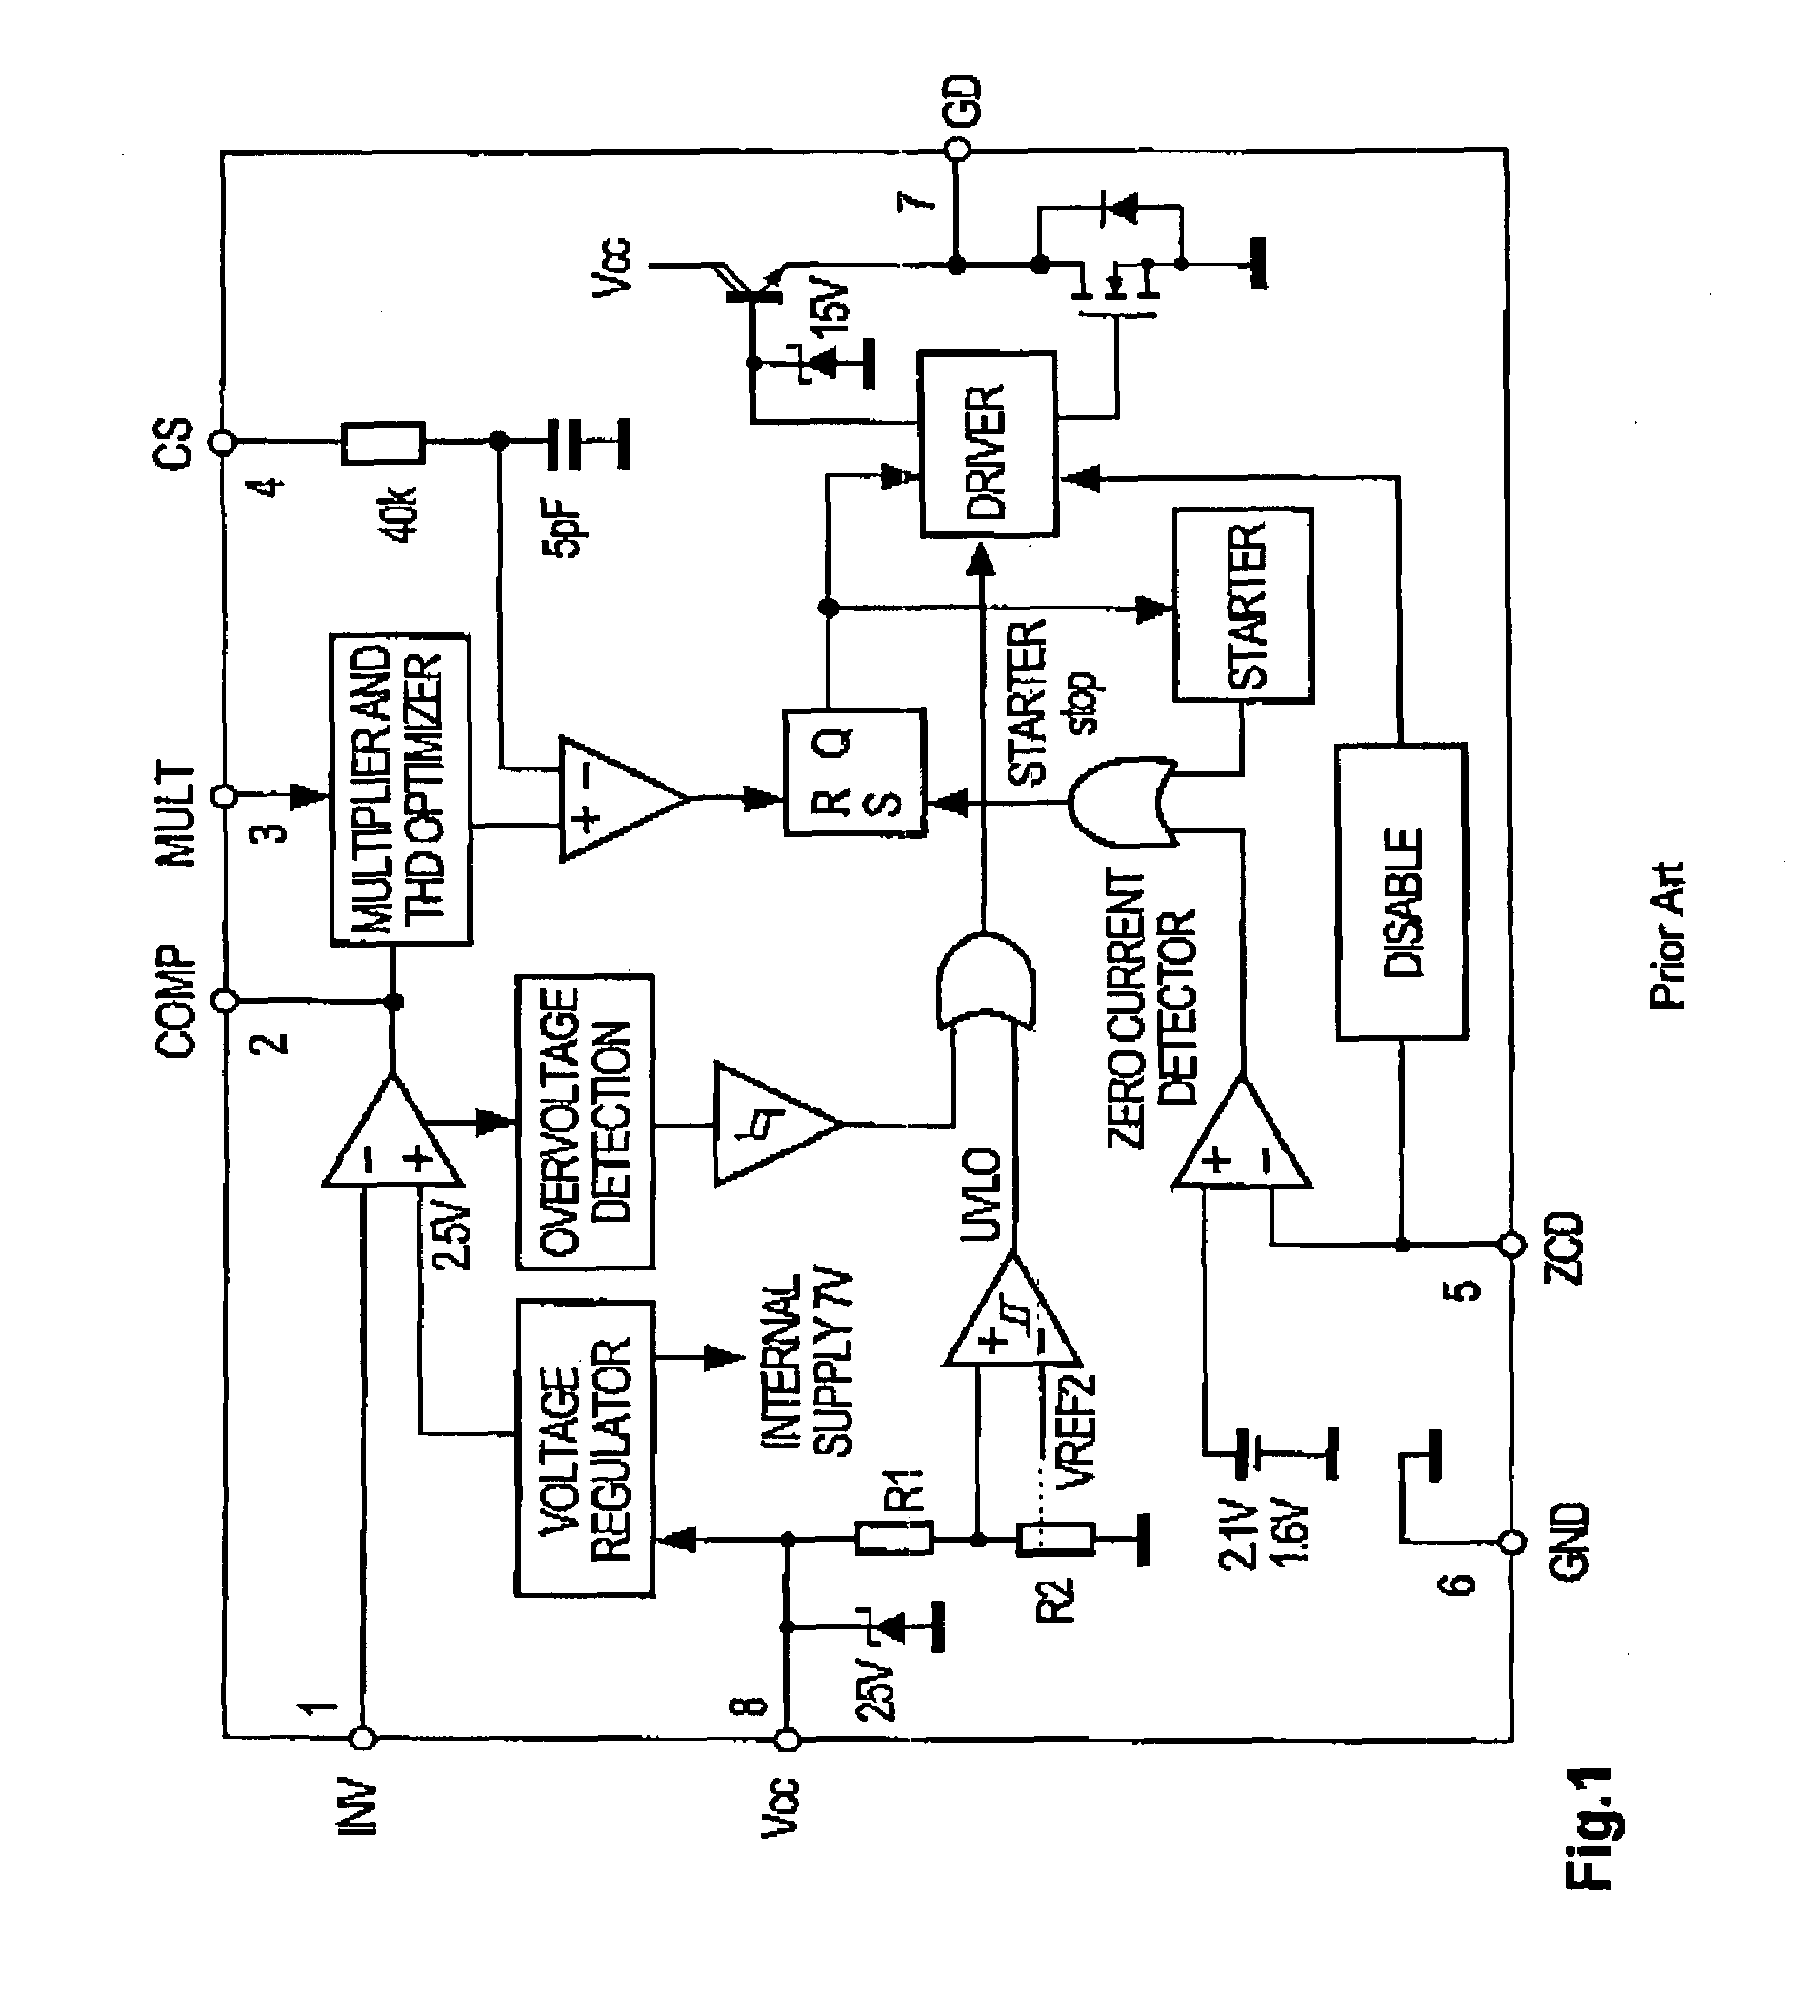 switching mode power supply protect circuit